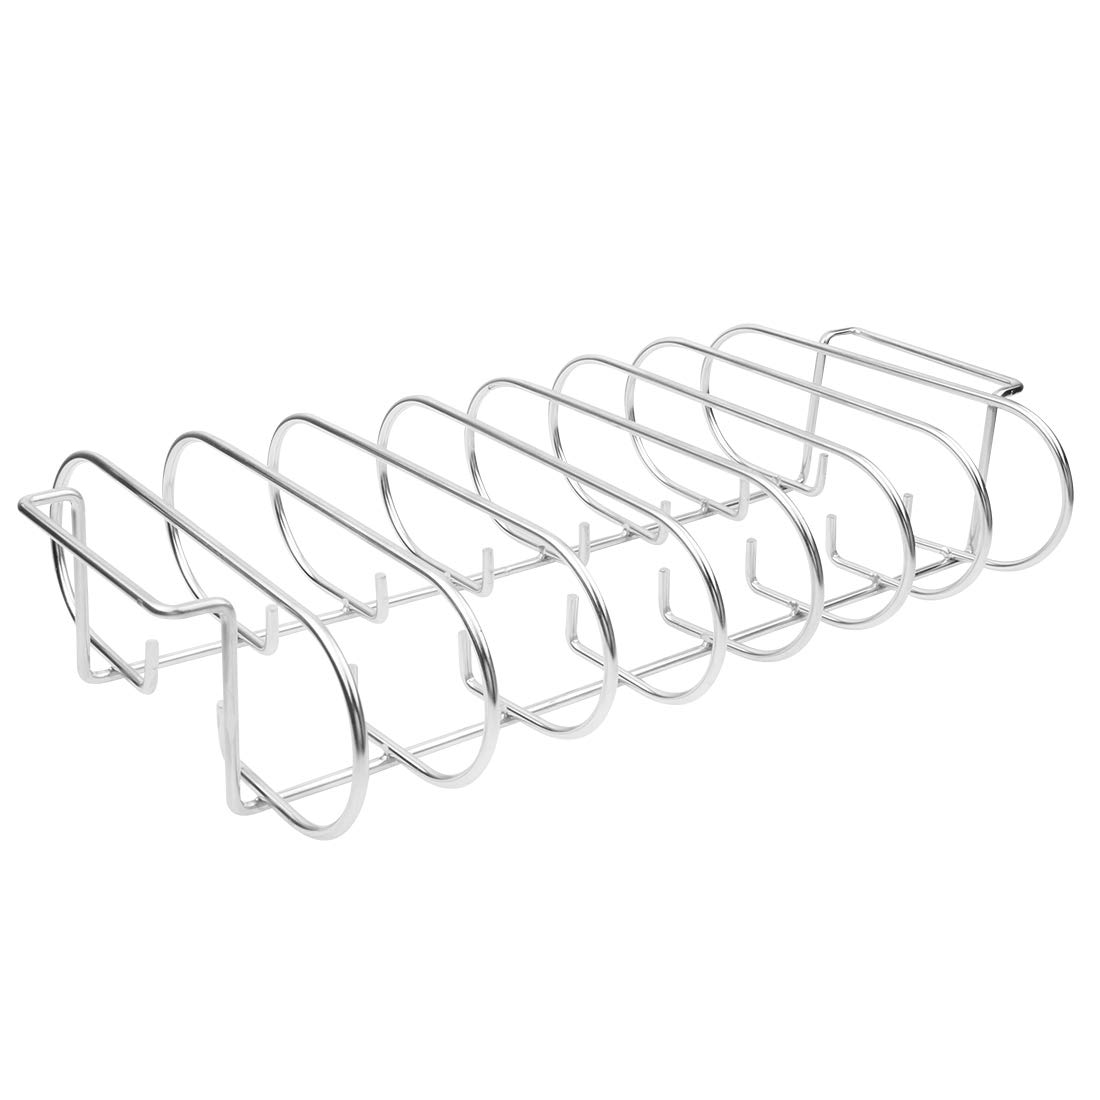 Mydracas Rib Rack for Smoking - Stainless Steel Roasting Stand - Holds 7 Ribs Racks for Grilling & Barbecuing by Mydracas